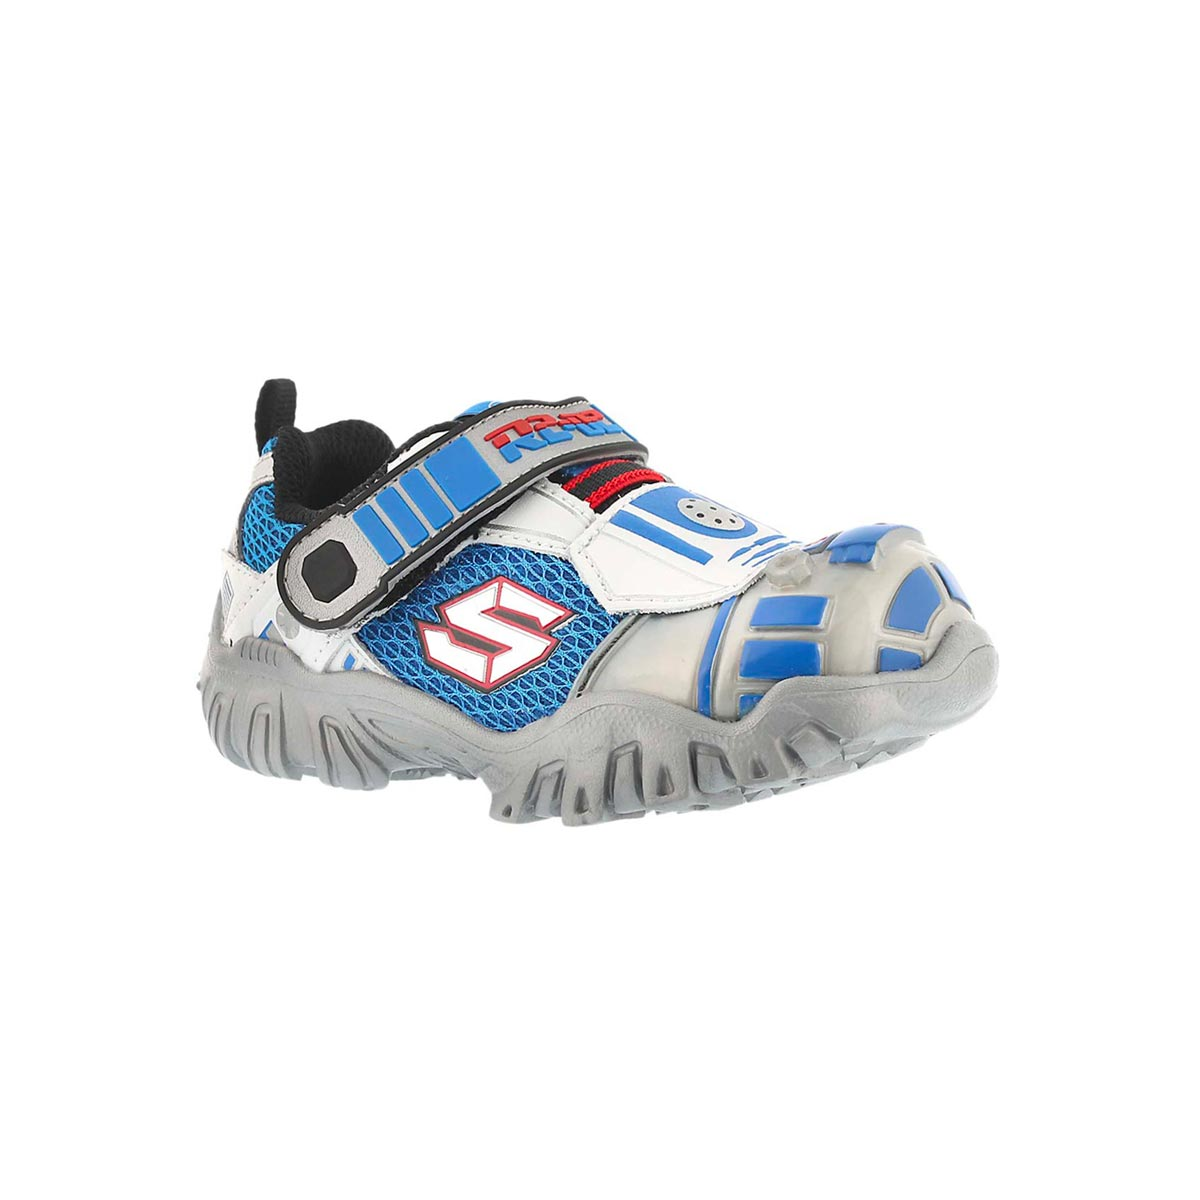 Infants' ASTROMECH silver/black light up sneakers